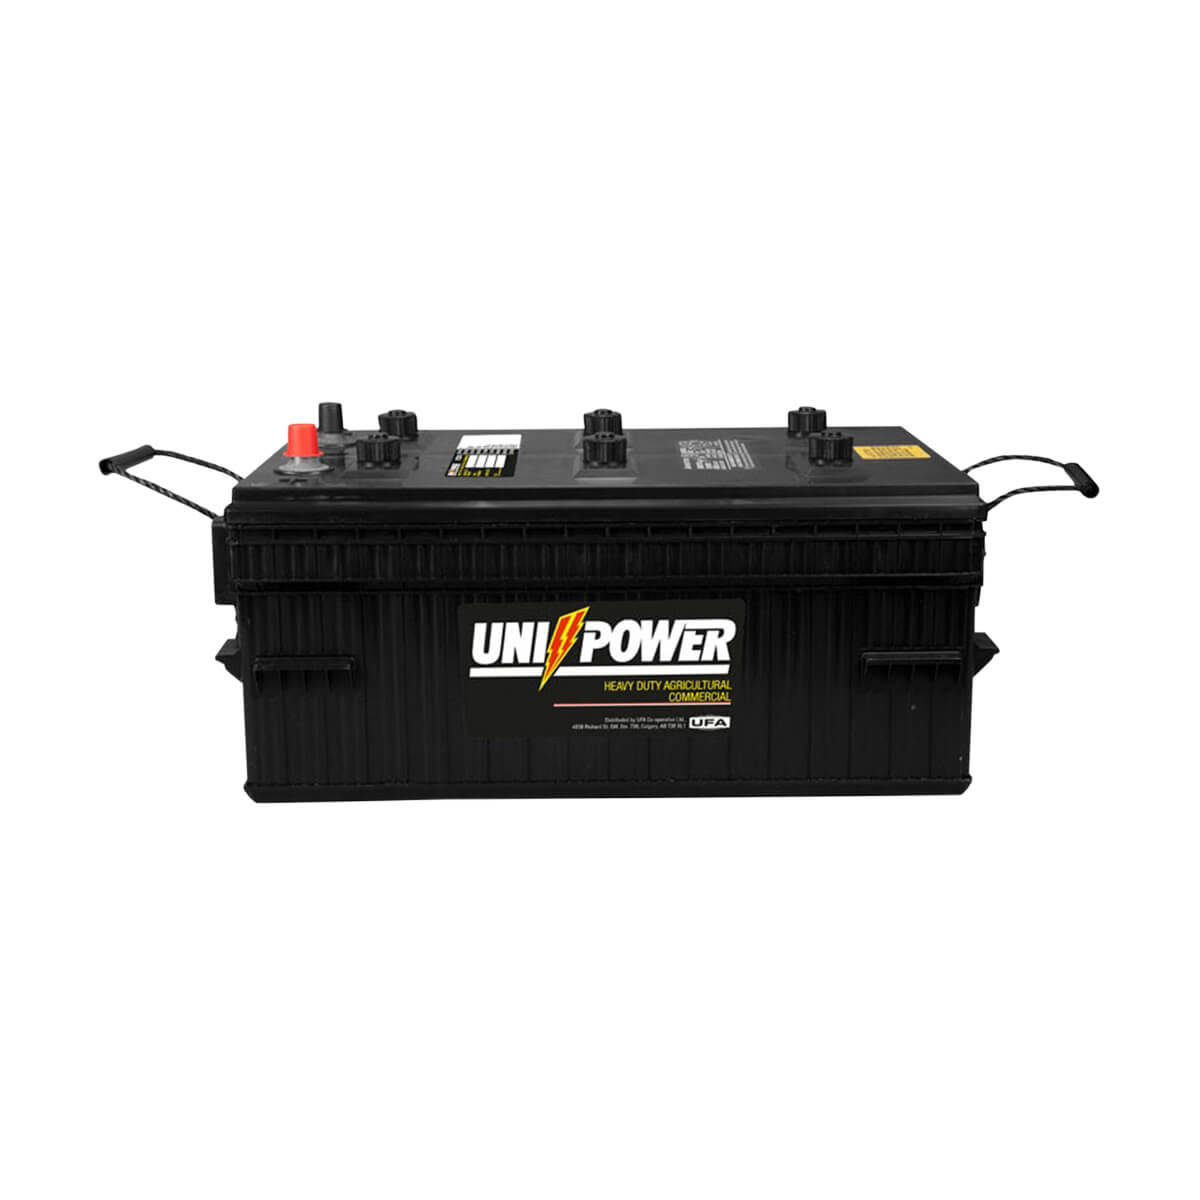 Uni-Power Heavy Duty 12 Volt Battery - 7-8XHD